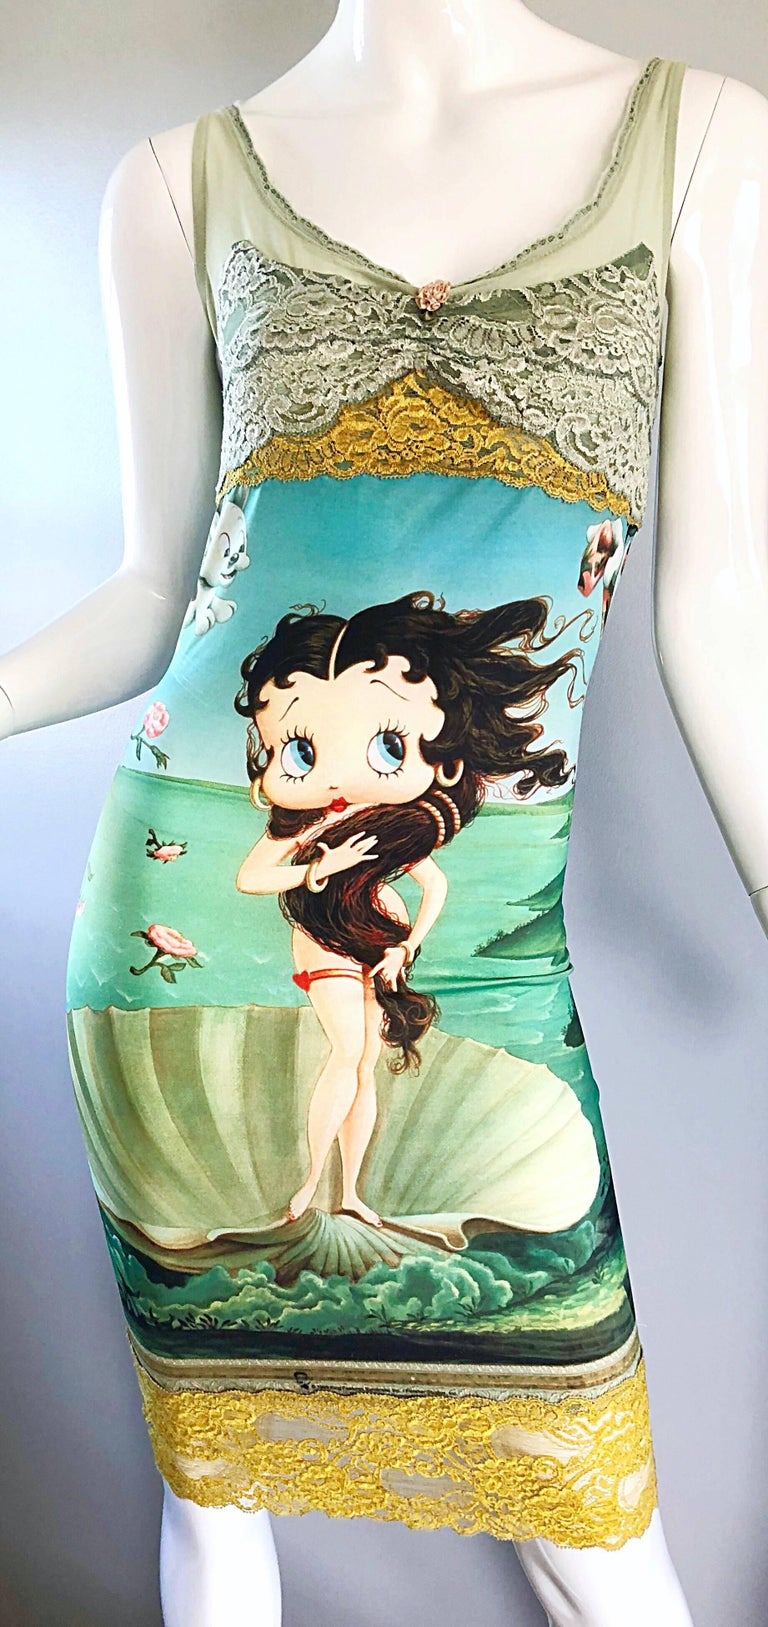 Vintage Eletra Casadei 90s Size Large Betty Boop Birth of Venus Novelty Dress For Sale 4